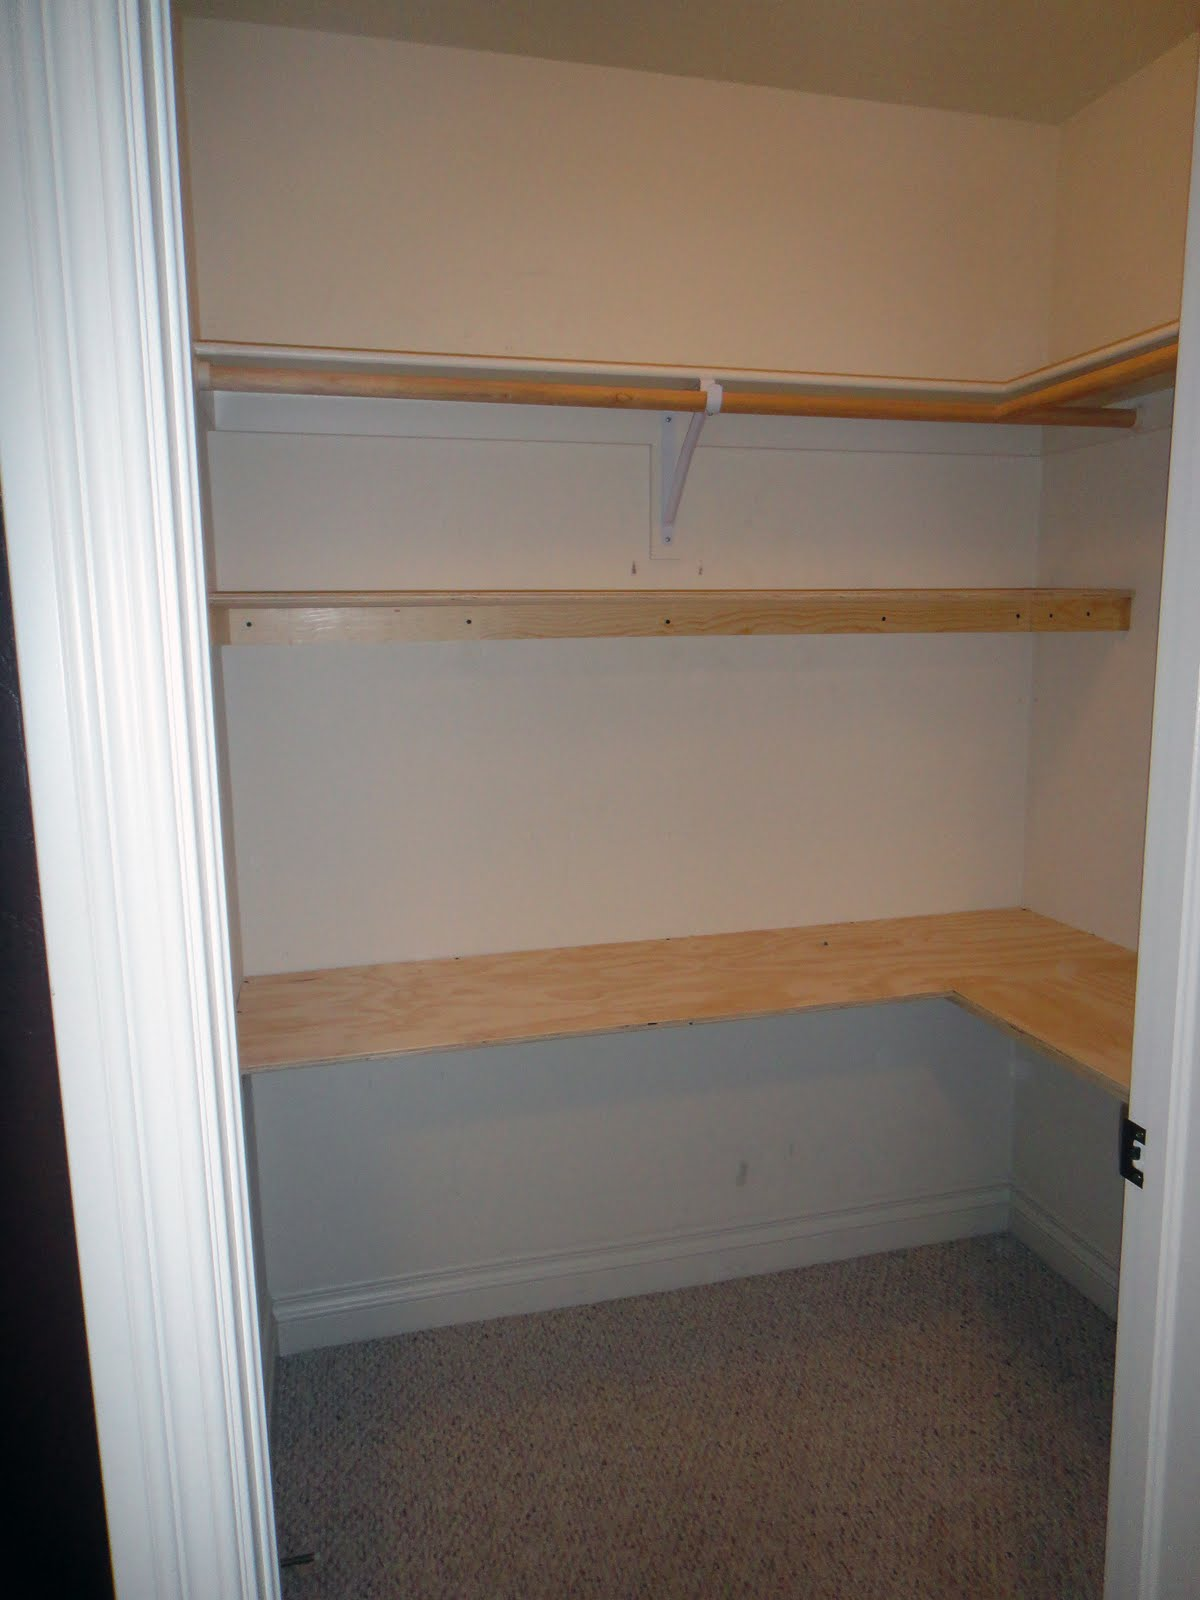 office closet shelving. Wednesday, November 9, 2011 Office Closet Shelving